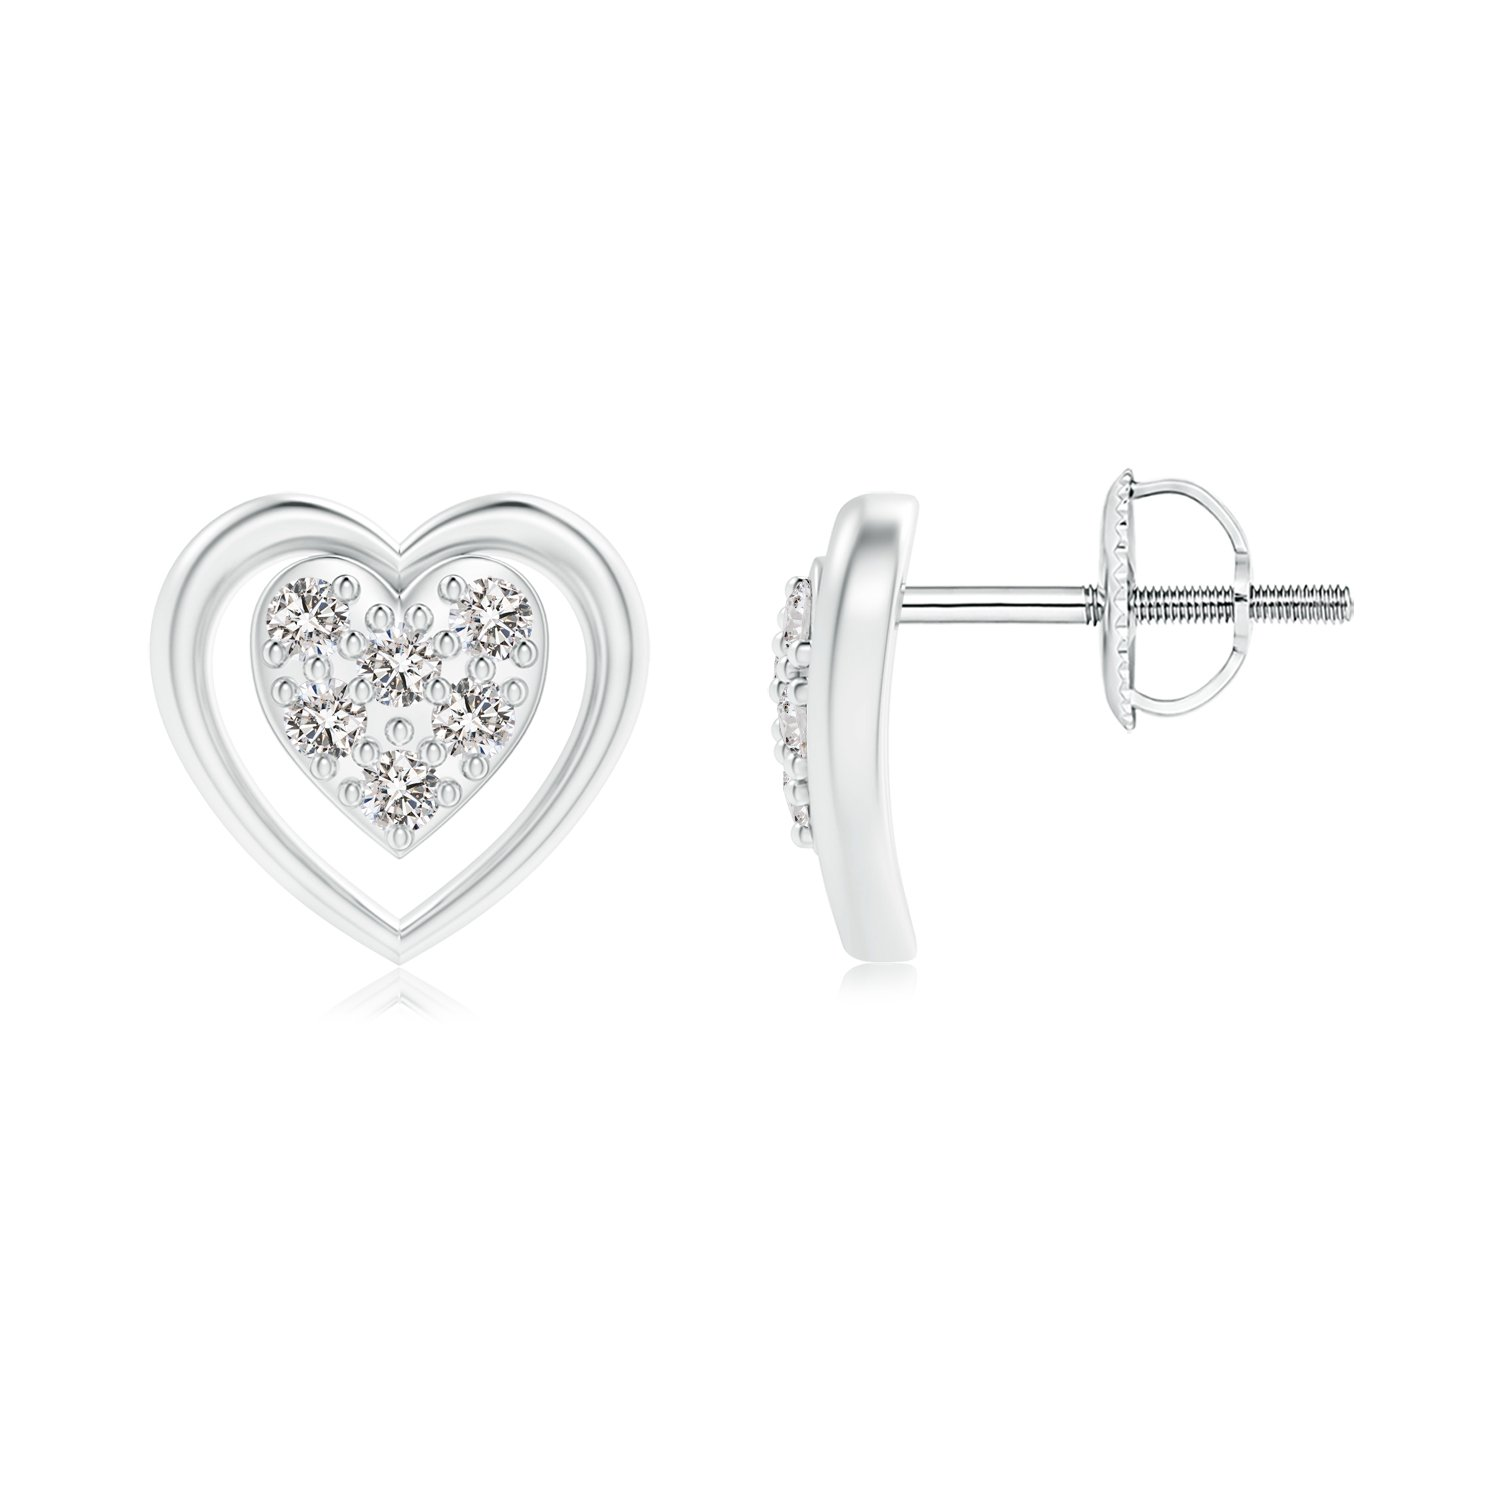 Angara Round Cluster Diamond Open Heart Stud Earrings gnEWhiIHX